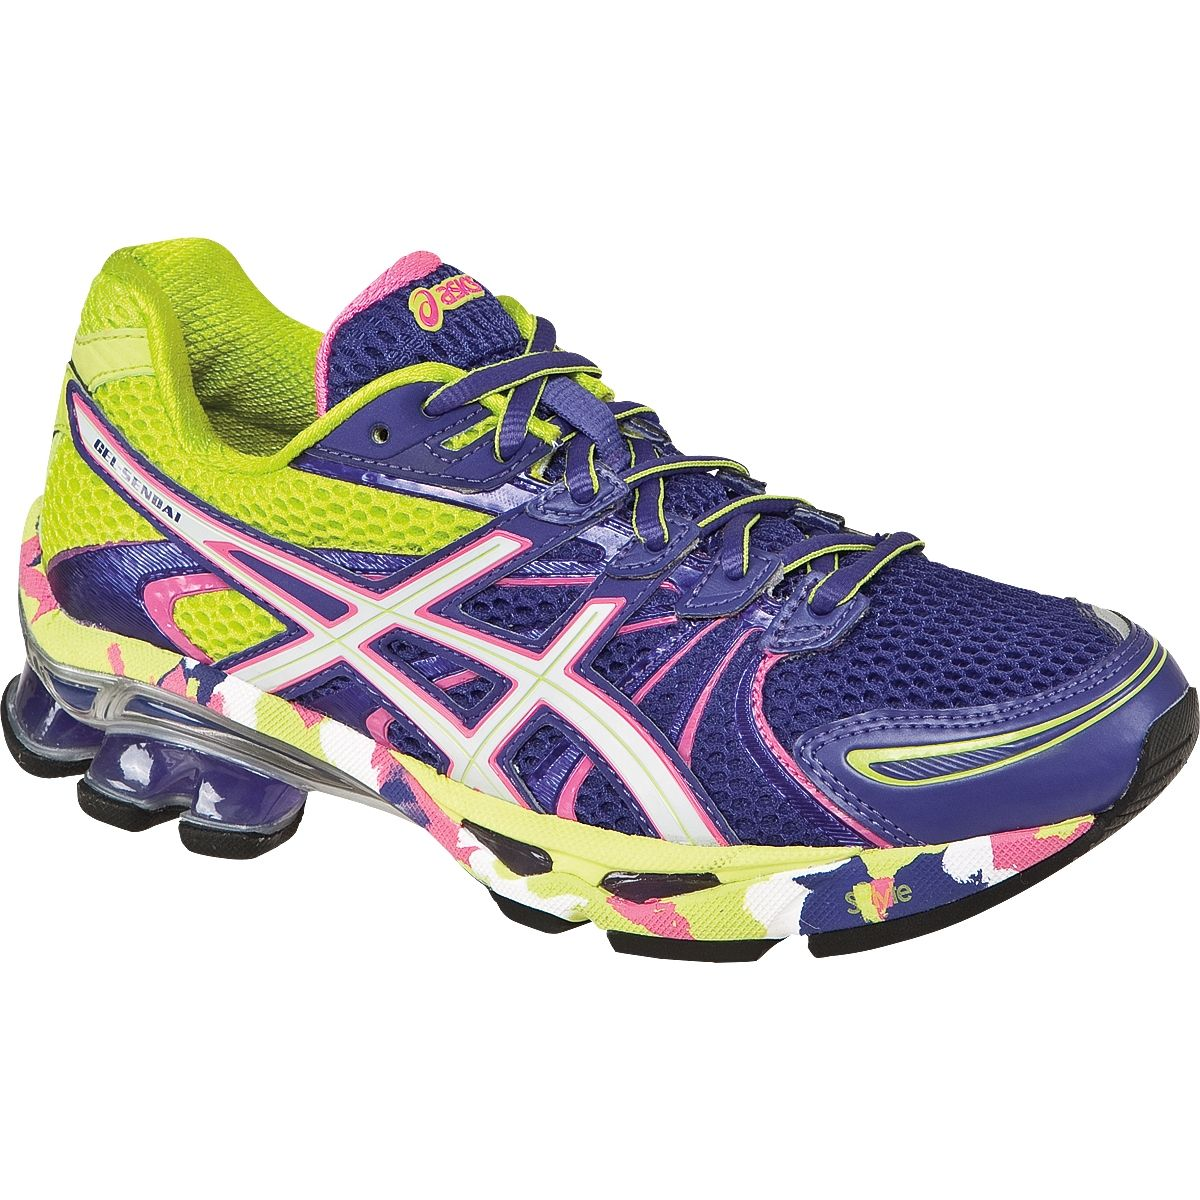 ASICS Women's Gel-Sendai Running M US, Take time to expand your workouts in  the ASICS GEL-SendaiTM trainer. Award-winning rearfoot and forefoot GEL ...